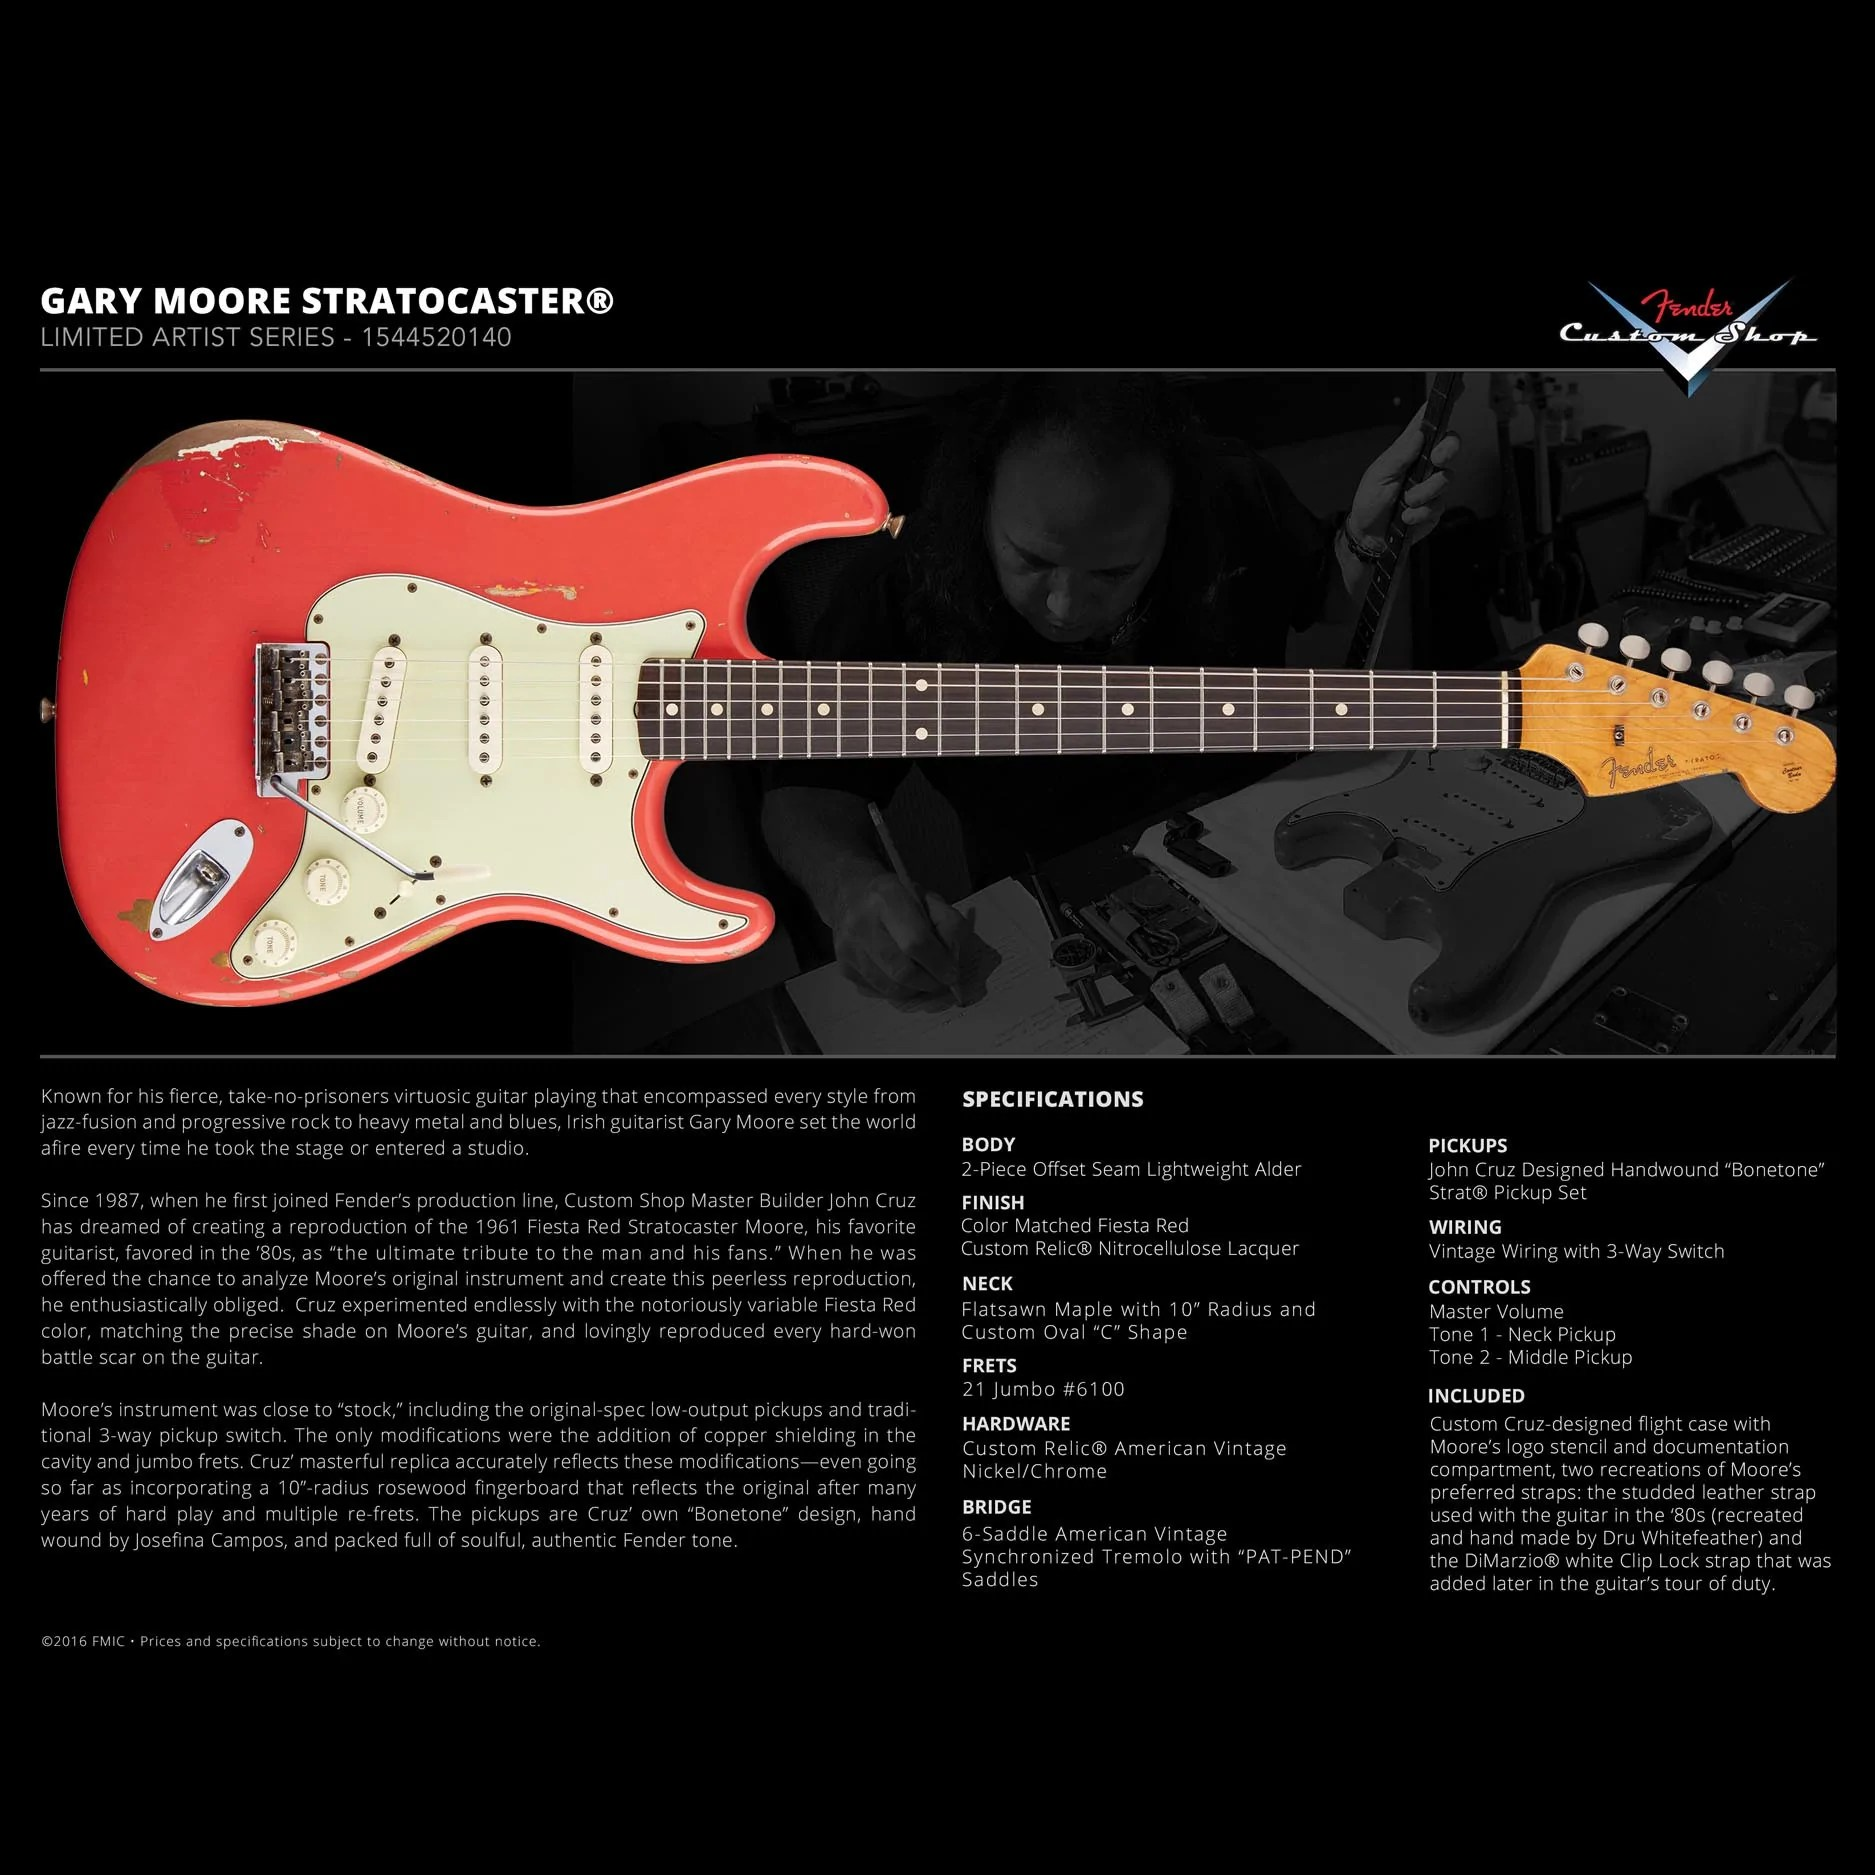 fender custom shop gary moore stratocaster limited edition artist series tribute fiesta red [ 1875 x 1875 Pixel ]